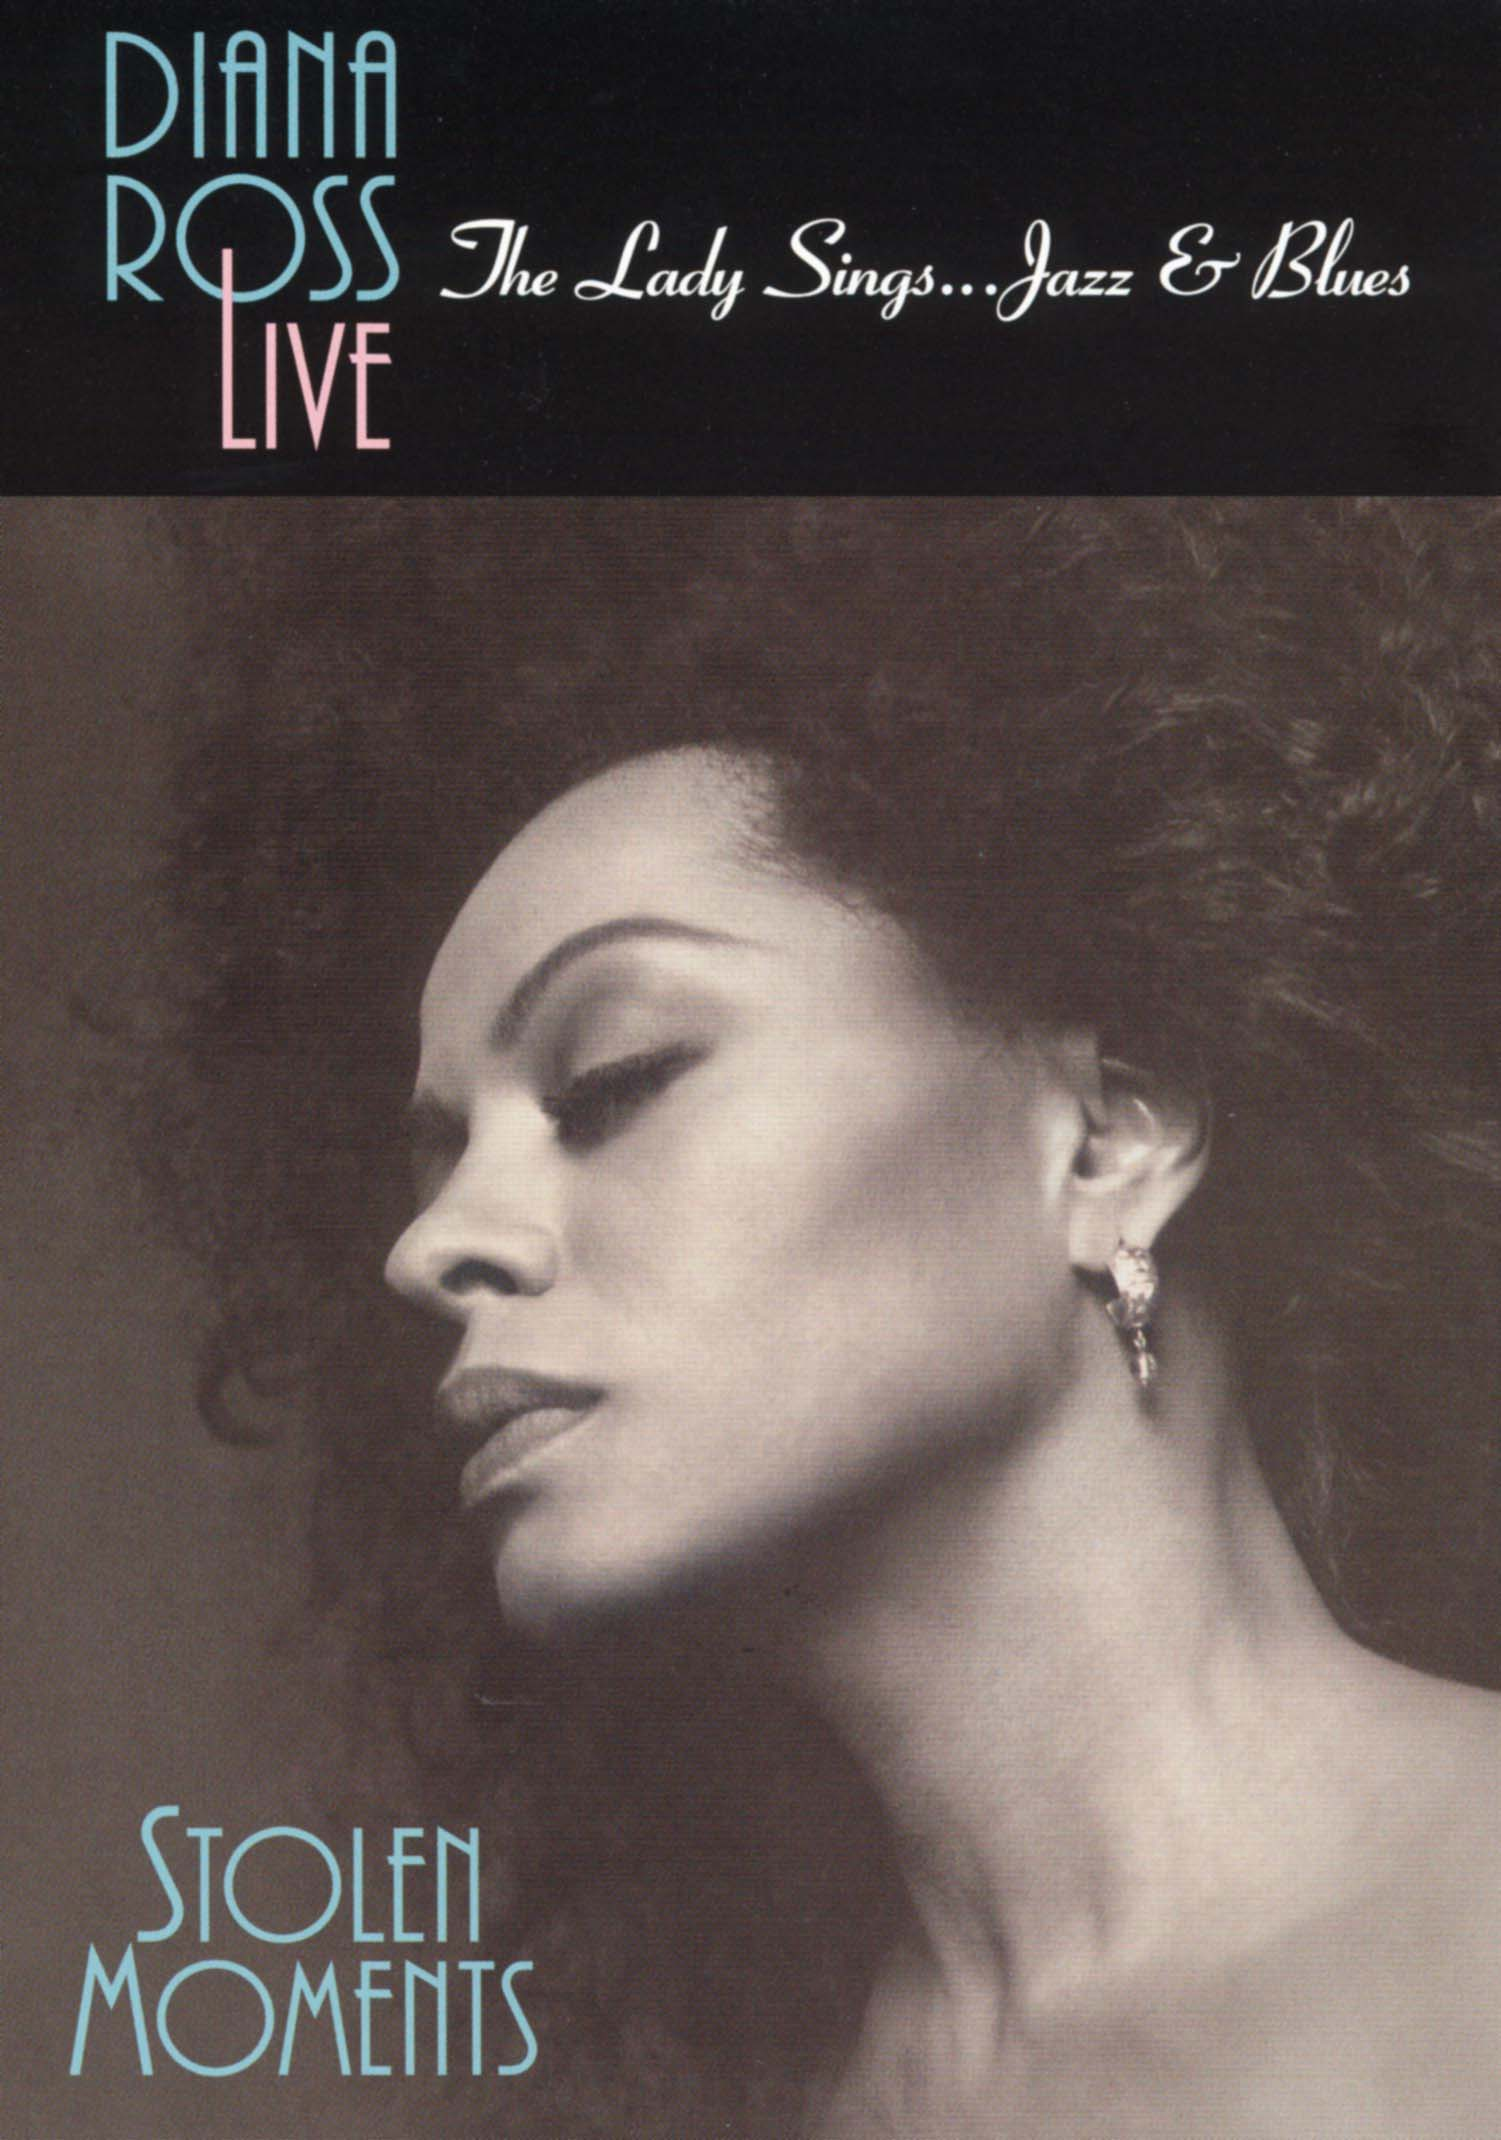 Diana Ross: The Lady Sings... Jazz & Blues